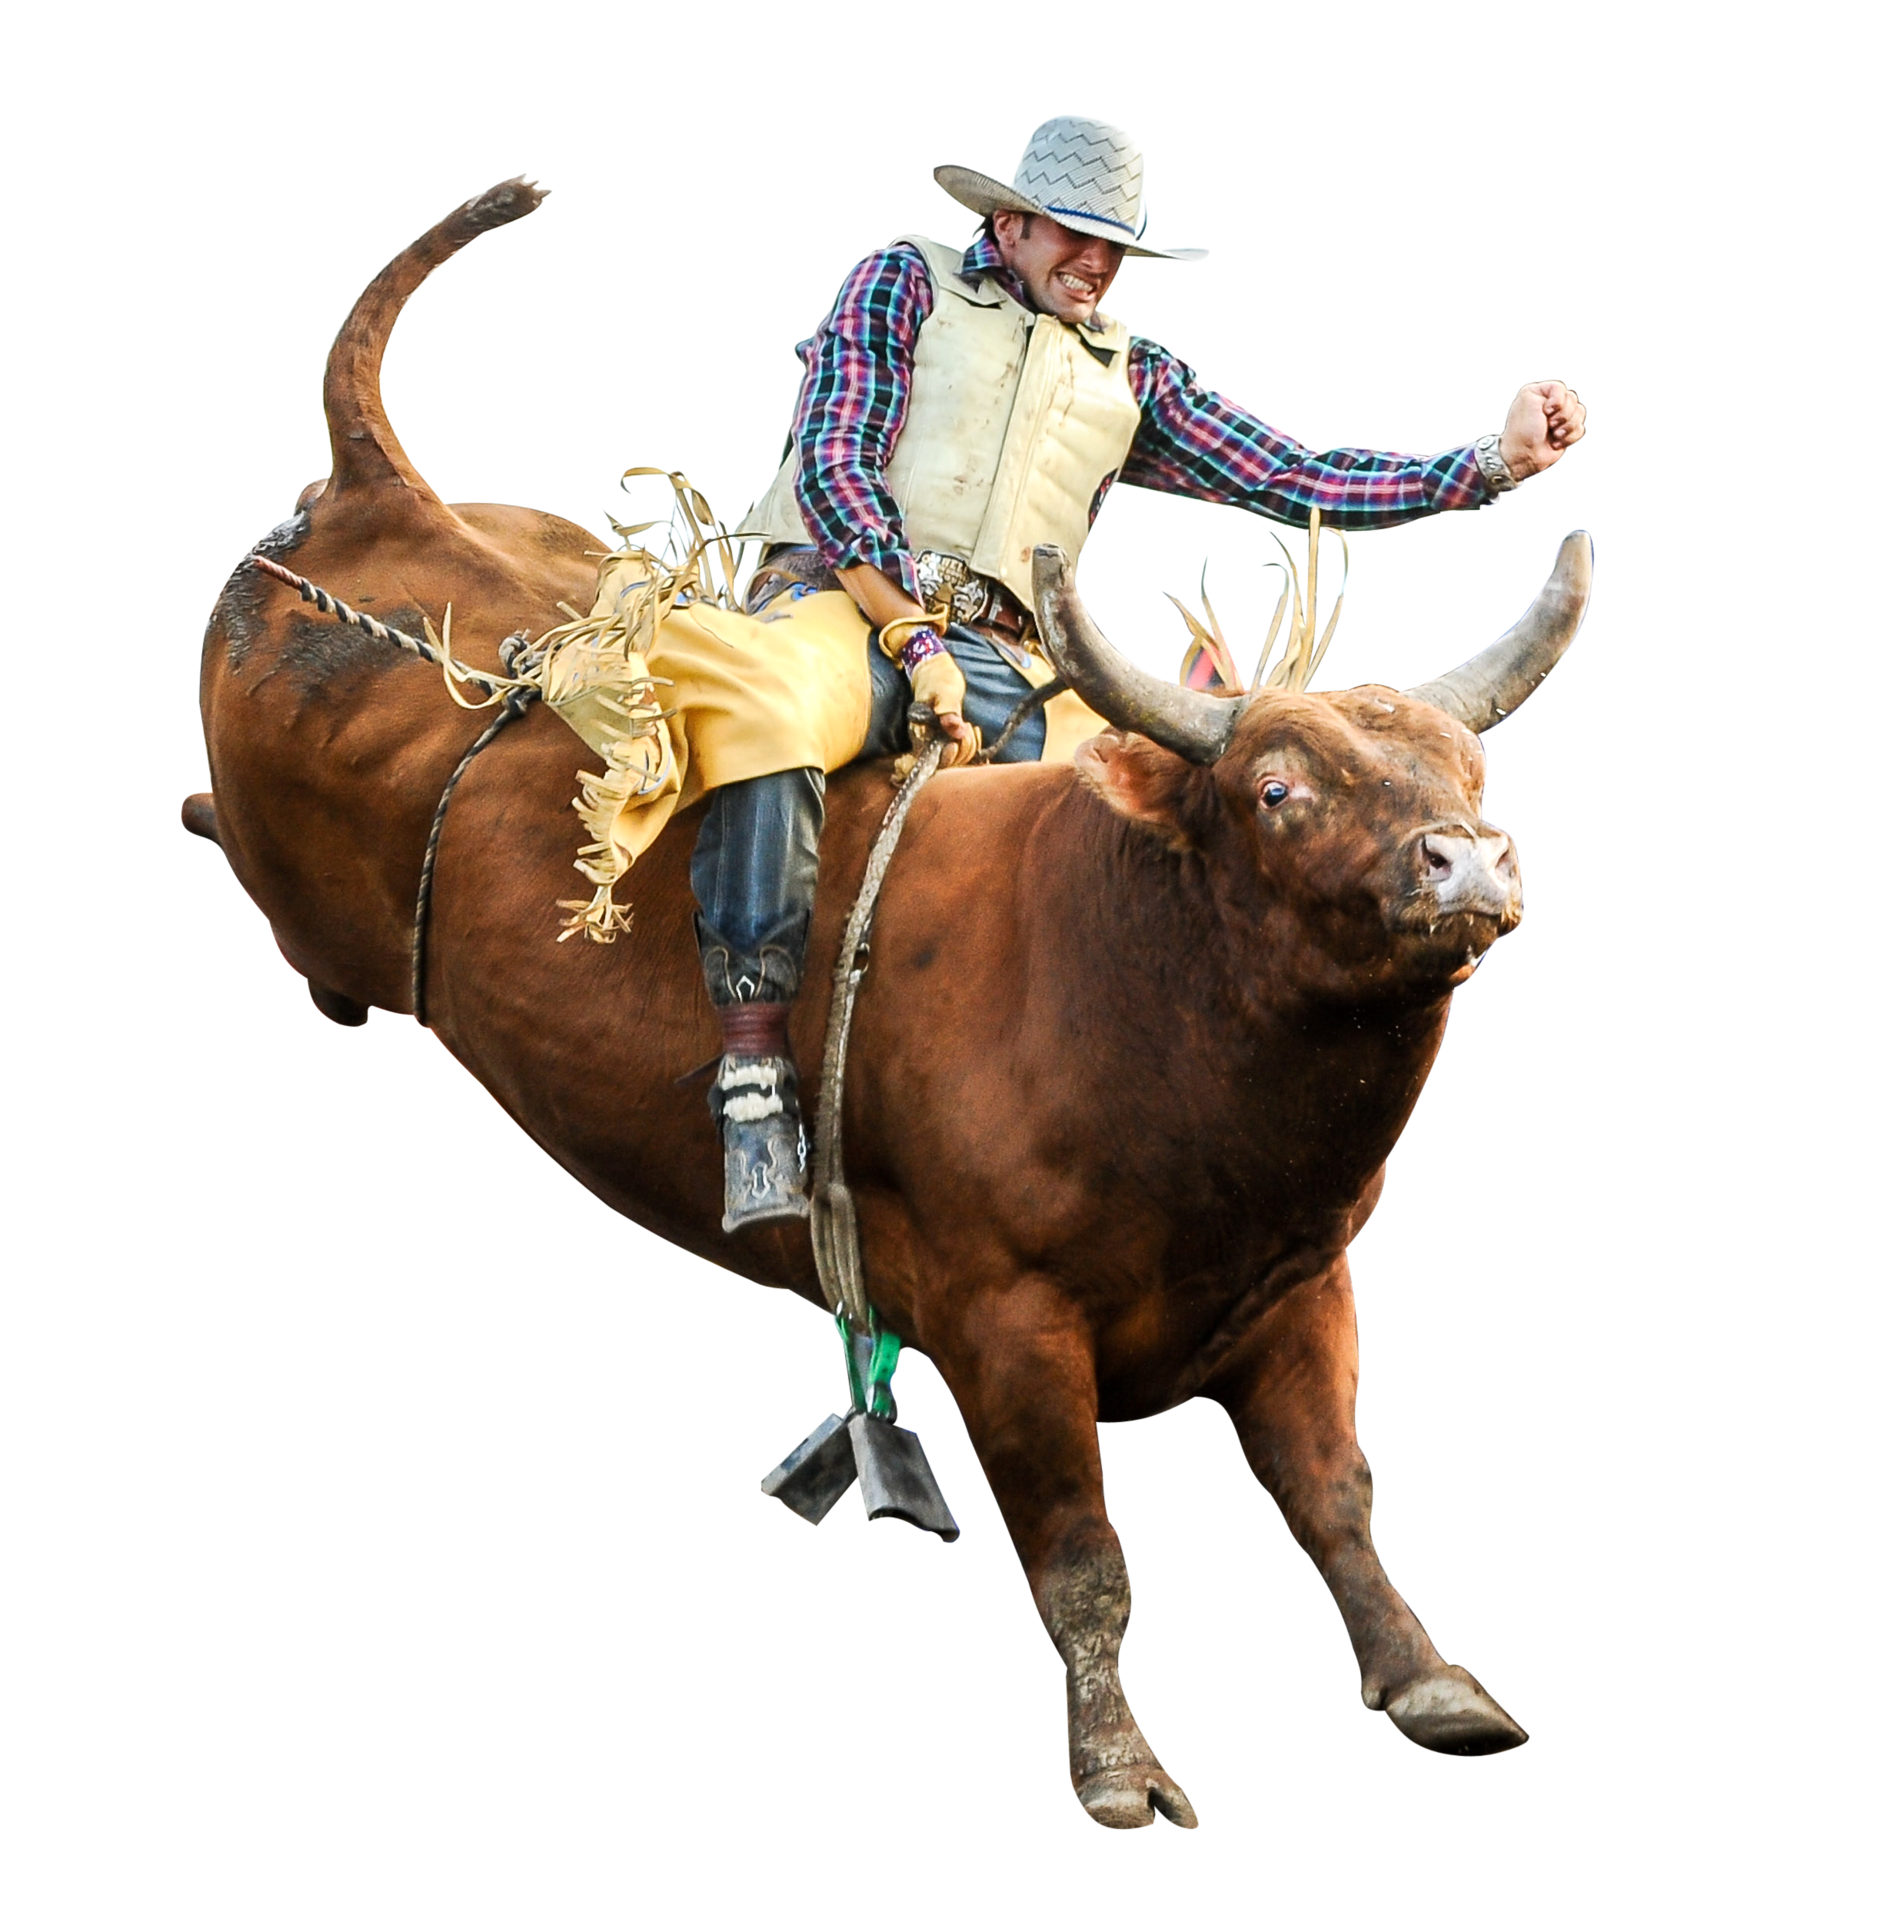 Committees Rice Bull Riding Company